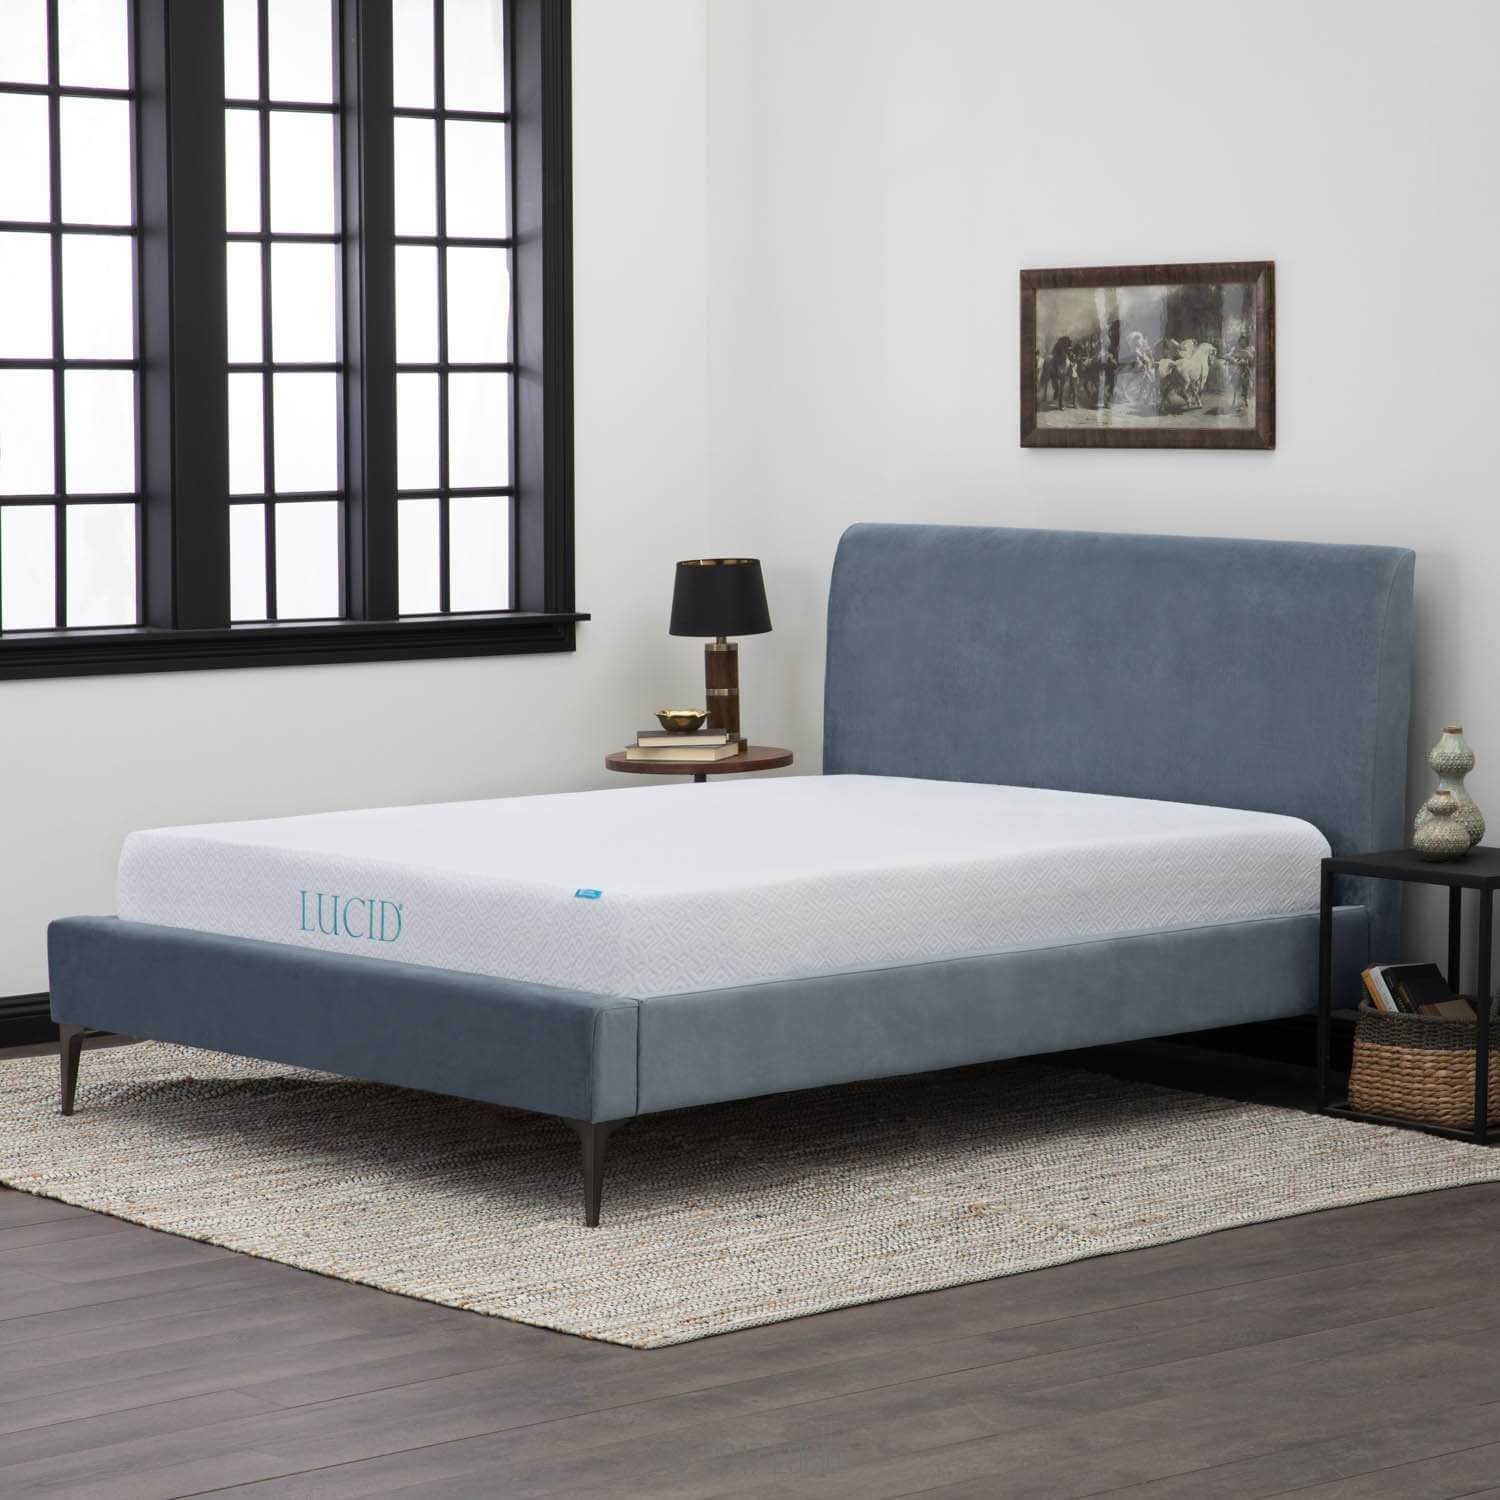 Best Mattress Amazon Lucid Mattress Review The Sleep Sherpa